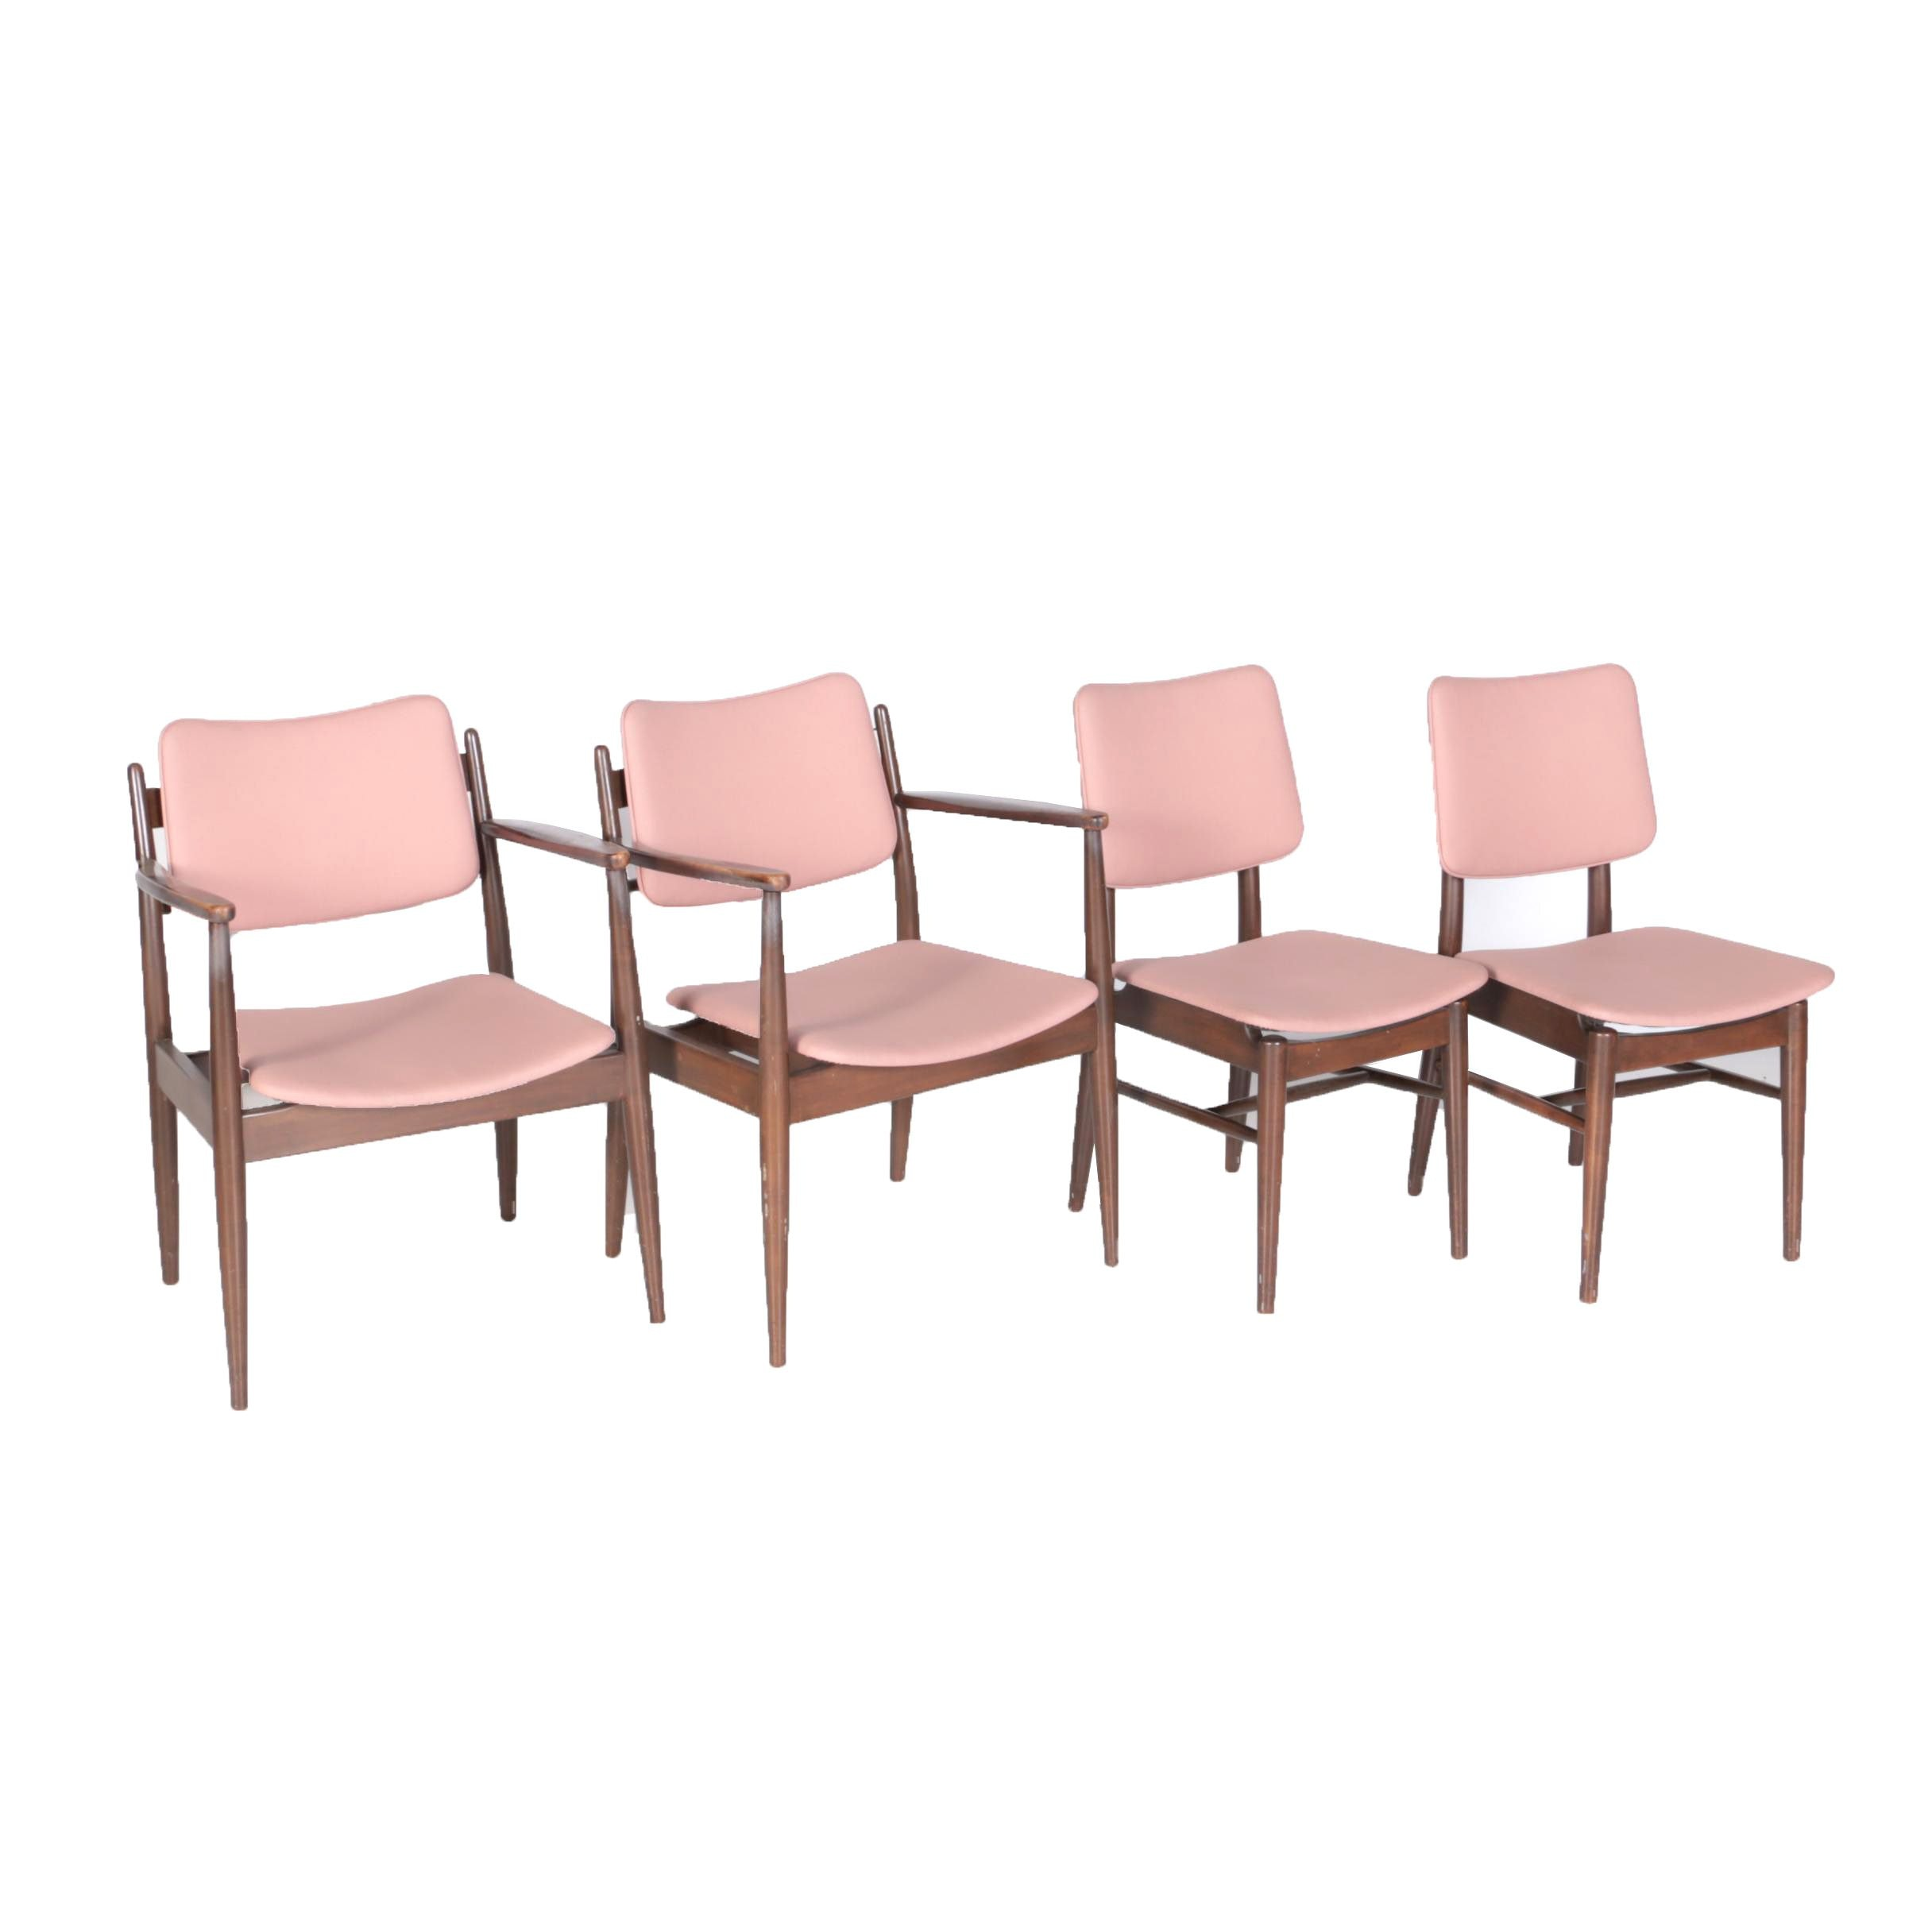 Four Mid Century Modern Chairs